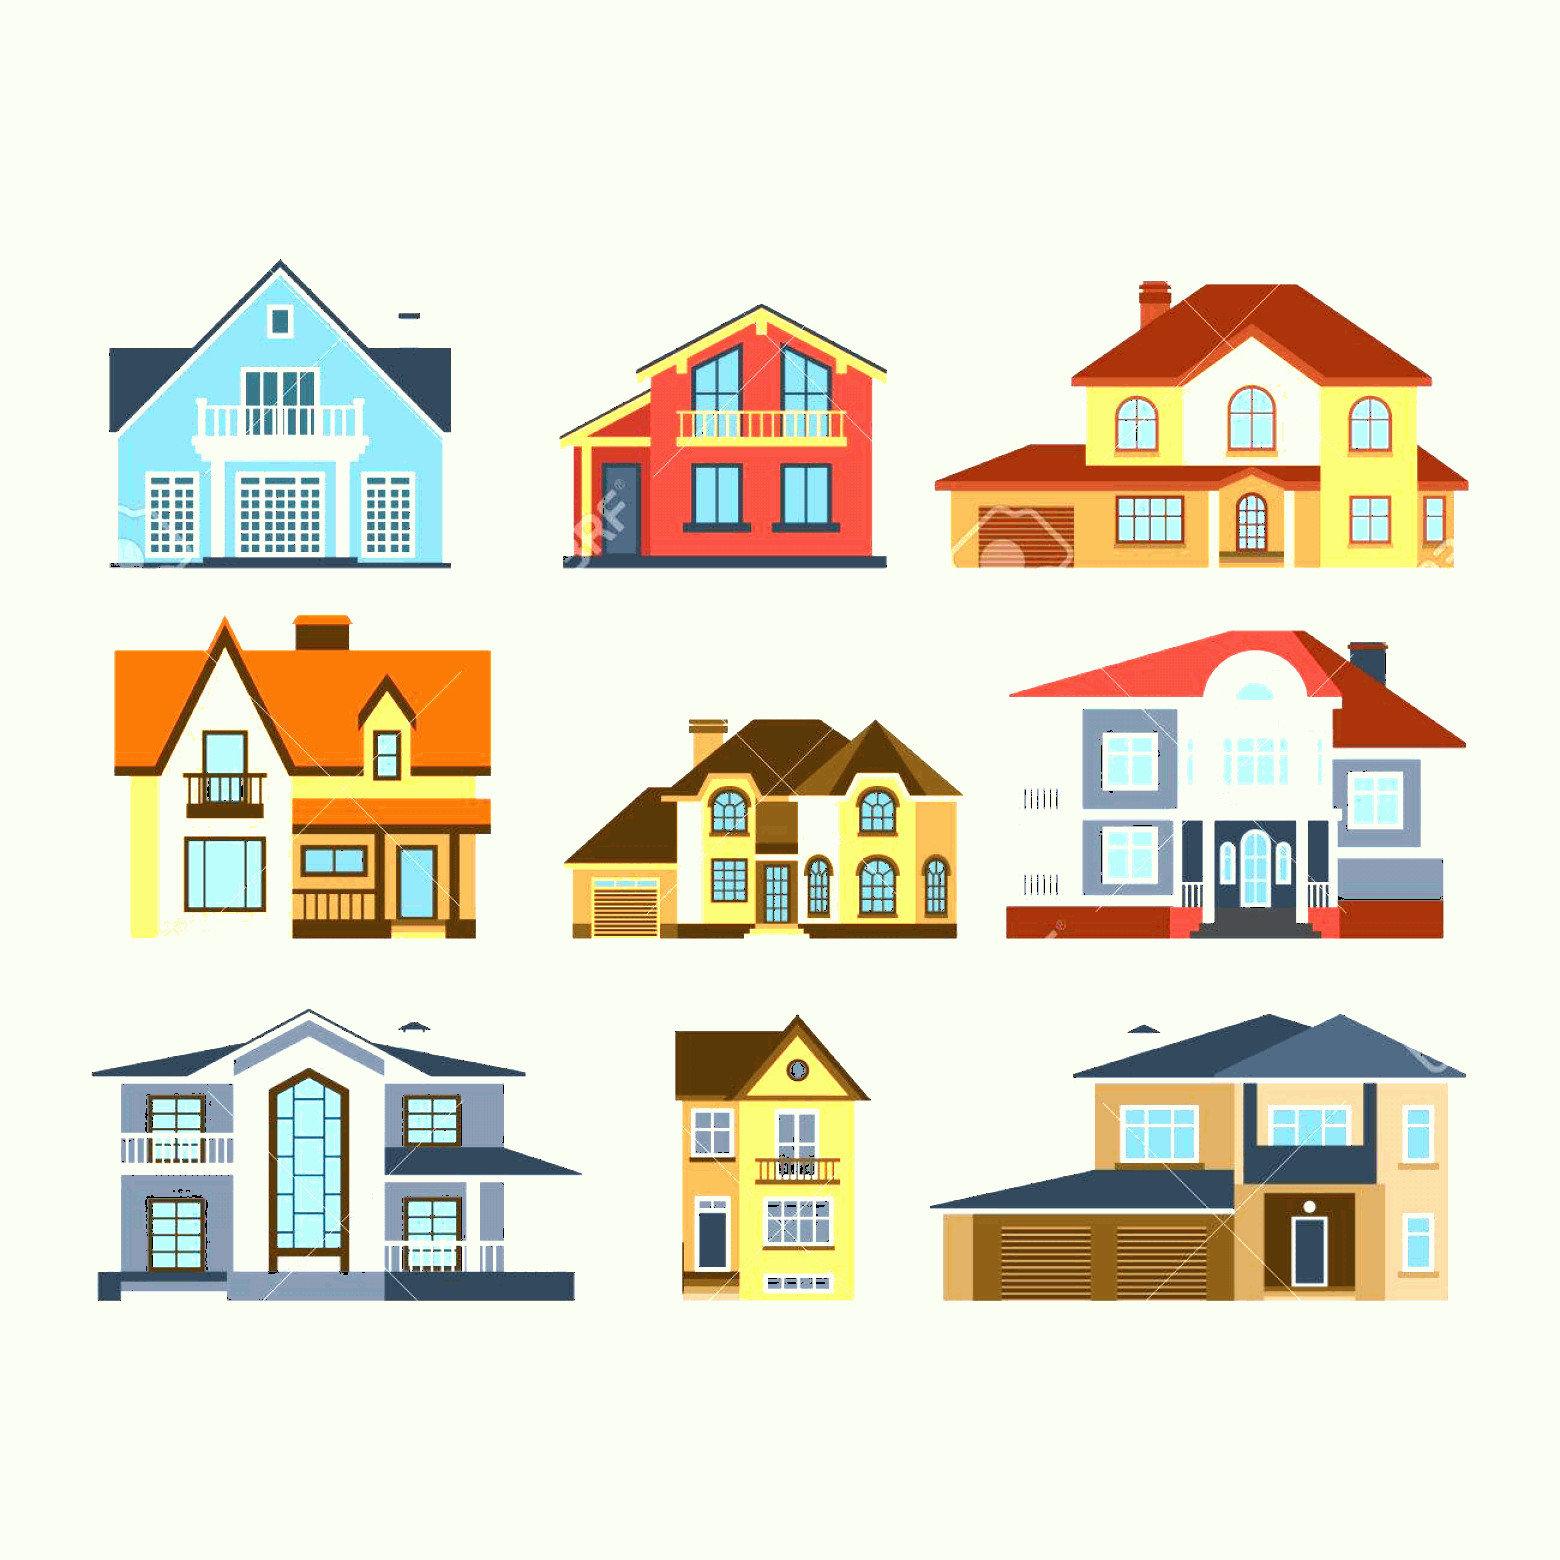 Flat Vector House: Photostock Vector Houses Front View Vector Illustration Houses Flat Style Modern Constructions Vector House Front Faca